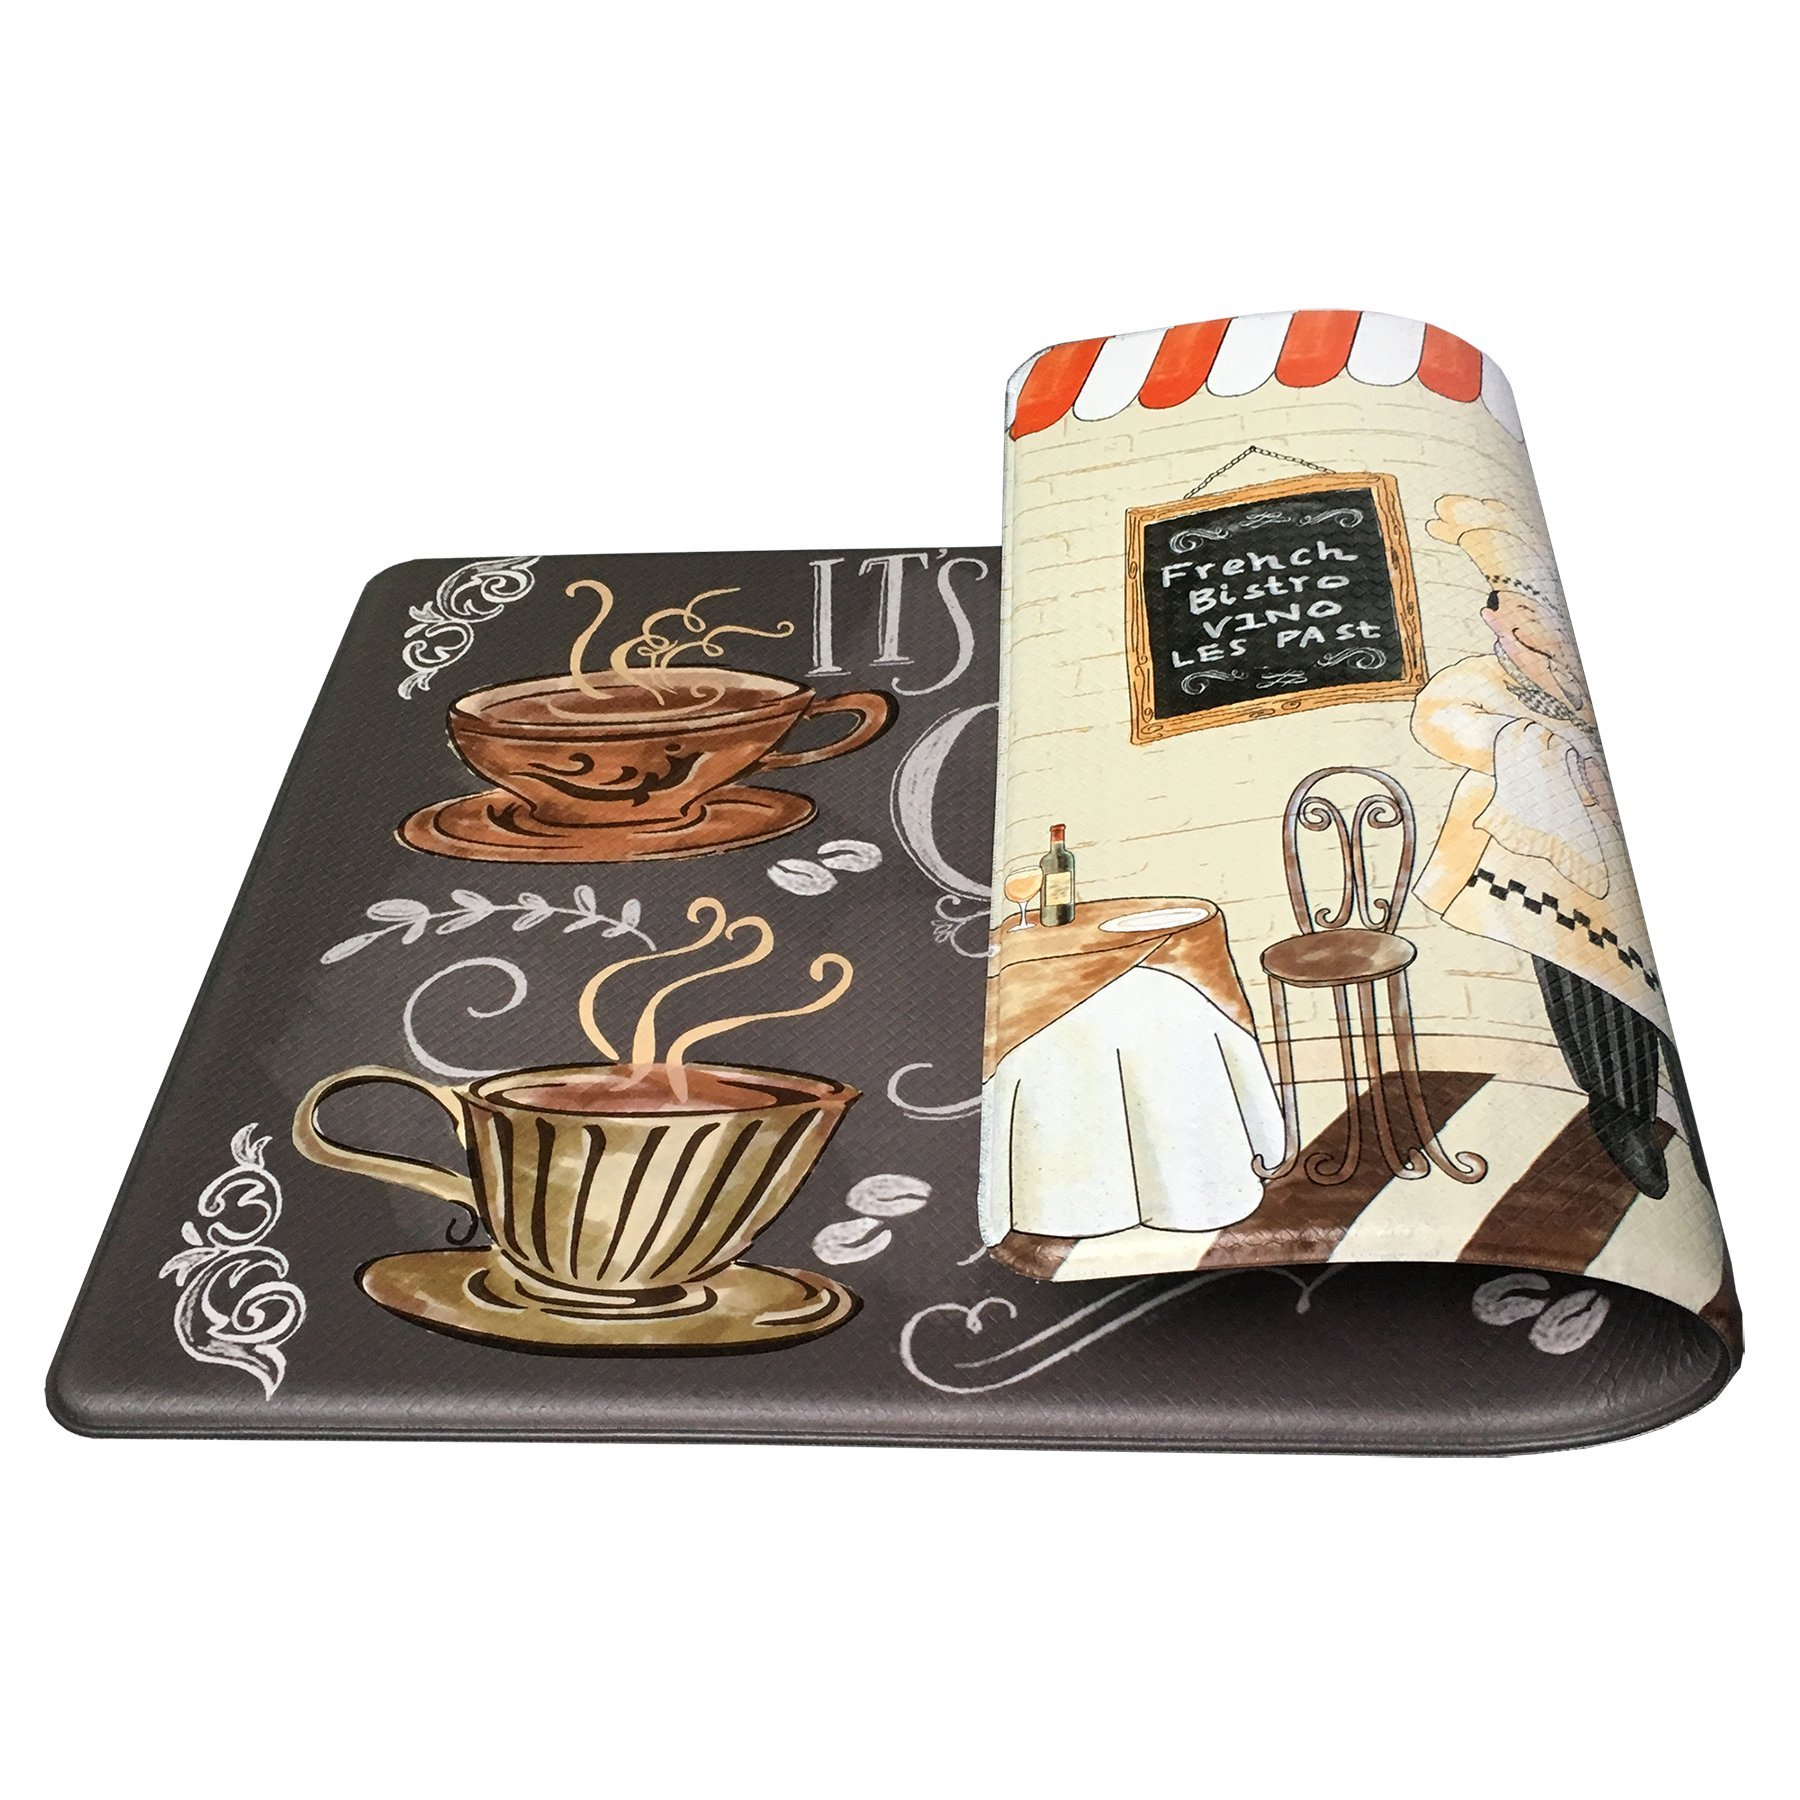 Art3d Premium Double-Sided Anti-Fatigue Chef Rug, Anti-Fatigue Comfort Mat. Multi-Purpose Decorative Standing Mat for the Kitchen, Bathroom, Laundry Room or Office, 18'' X 30''